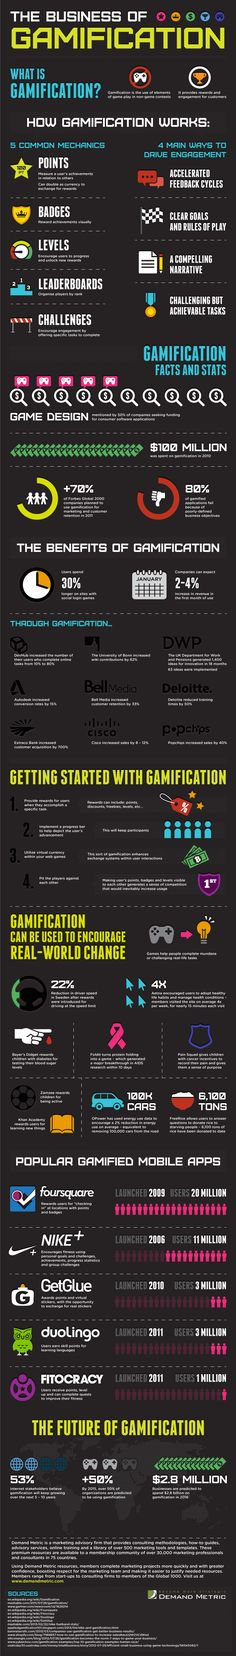 The Business of Gamification image The business of gamification infographic - Business2COmmunity